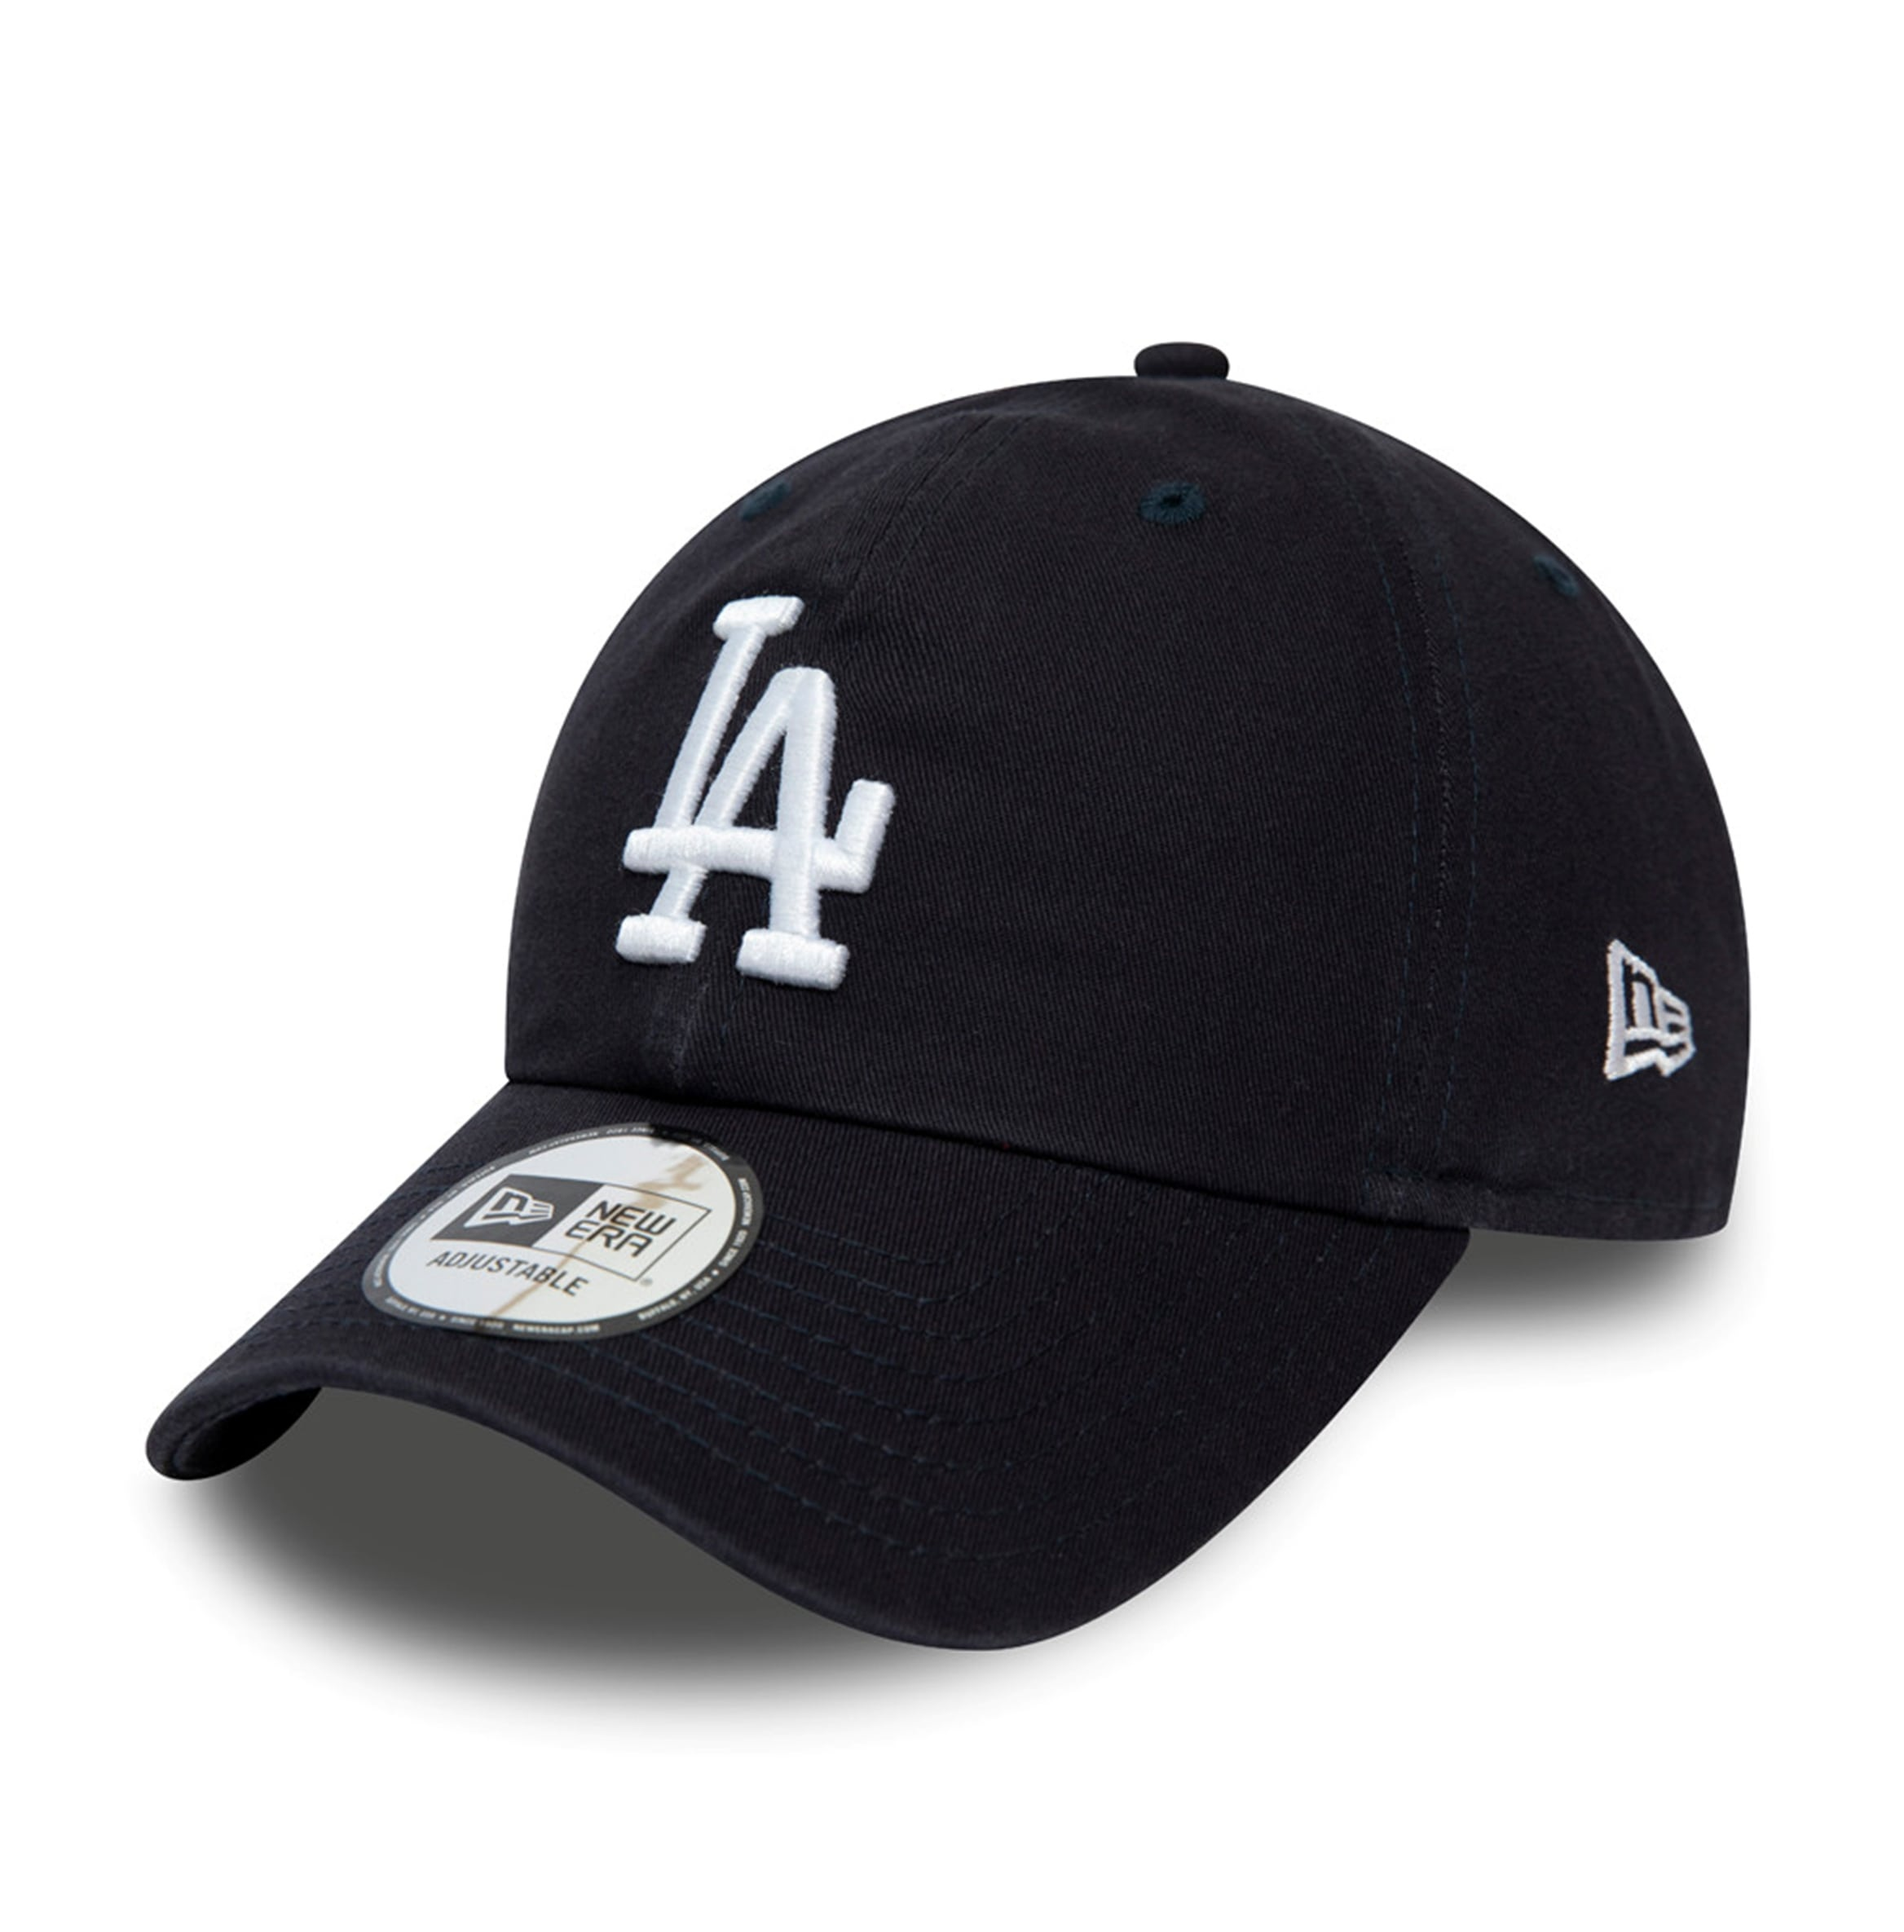 https://www.leadermode.com/195496/new-era-cap-washed-casual-classic-920-12489965-nvy.jpg